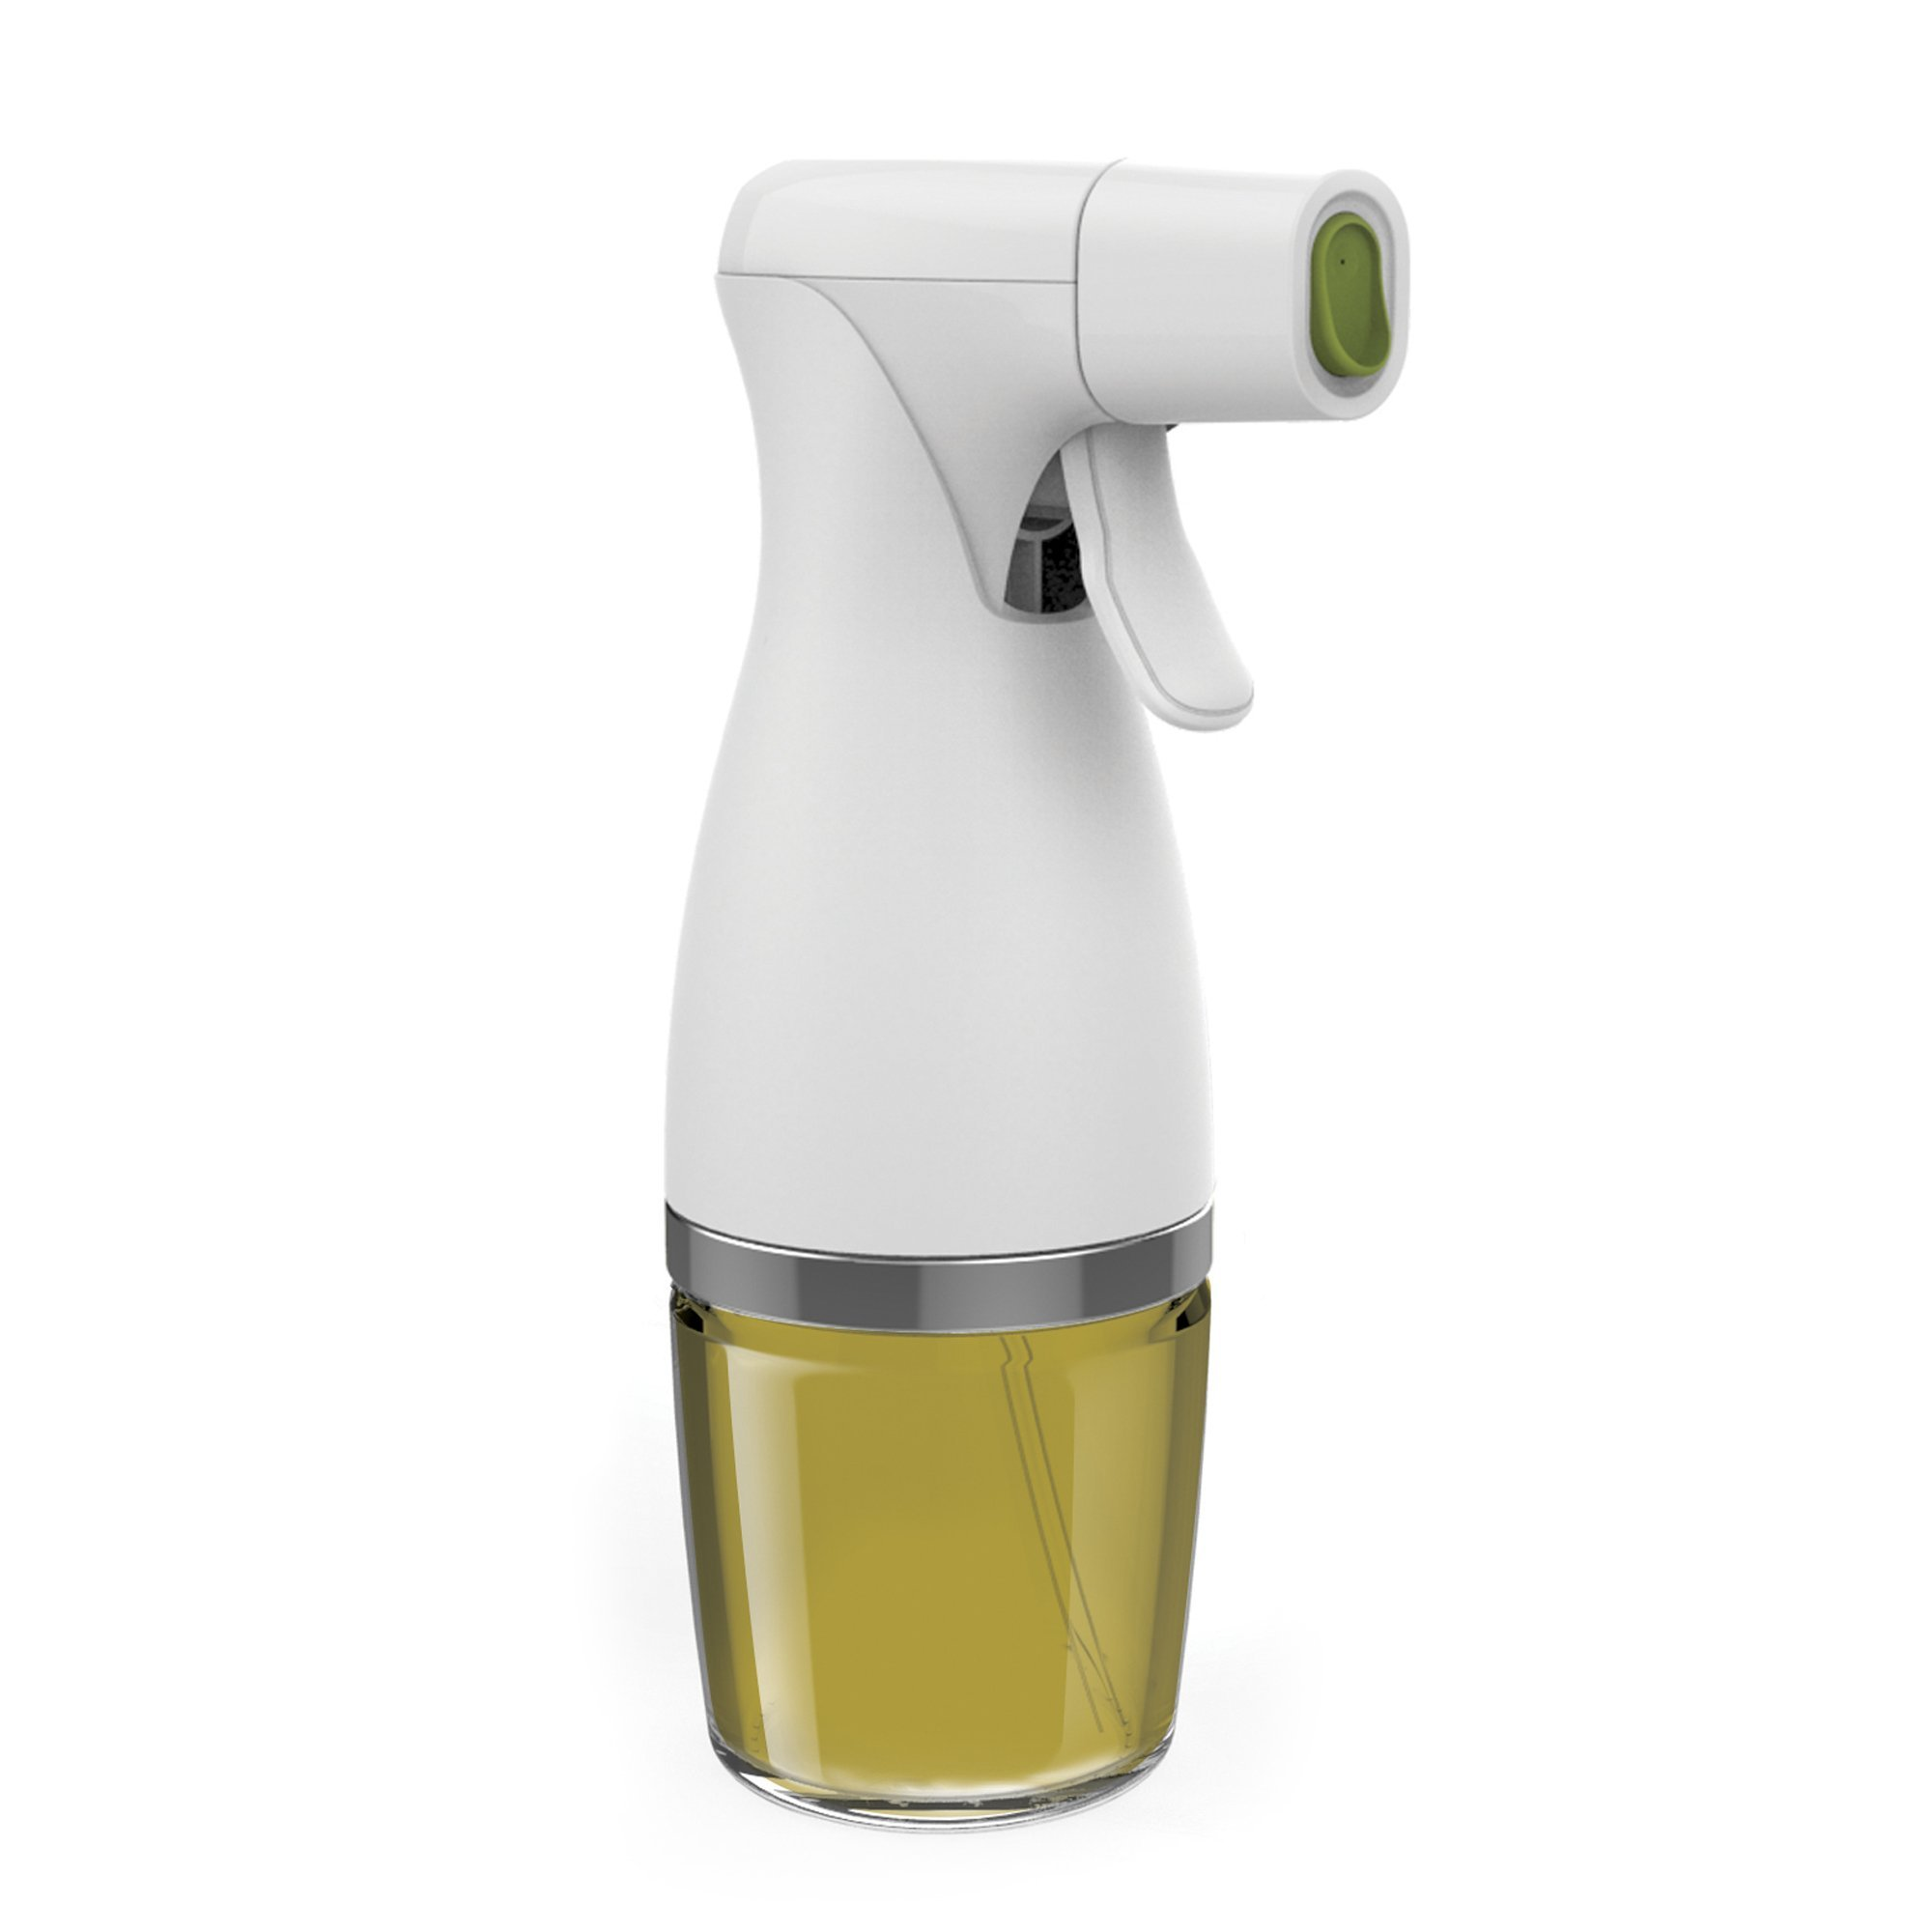 Prepara Healthy Eating Trigger Oil Sprayer for Kitchen and Grill, Simply Mist, Glass